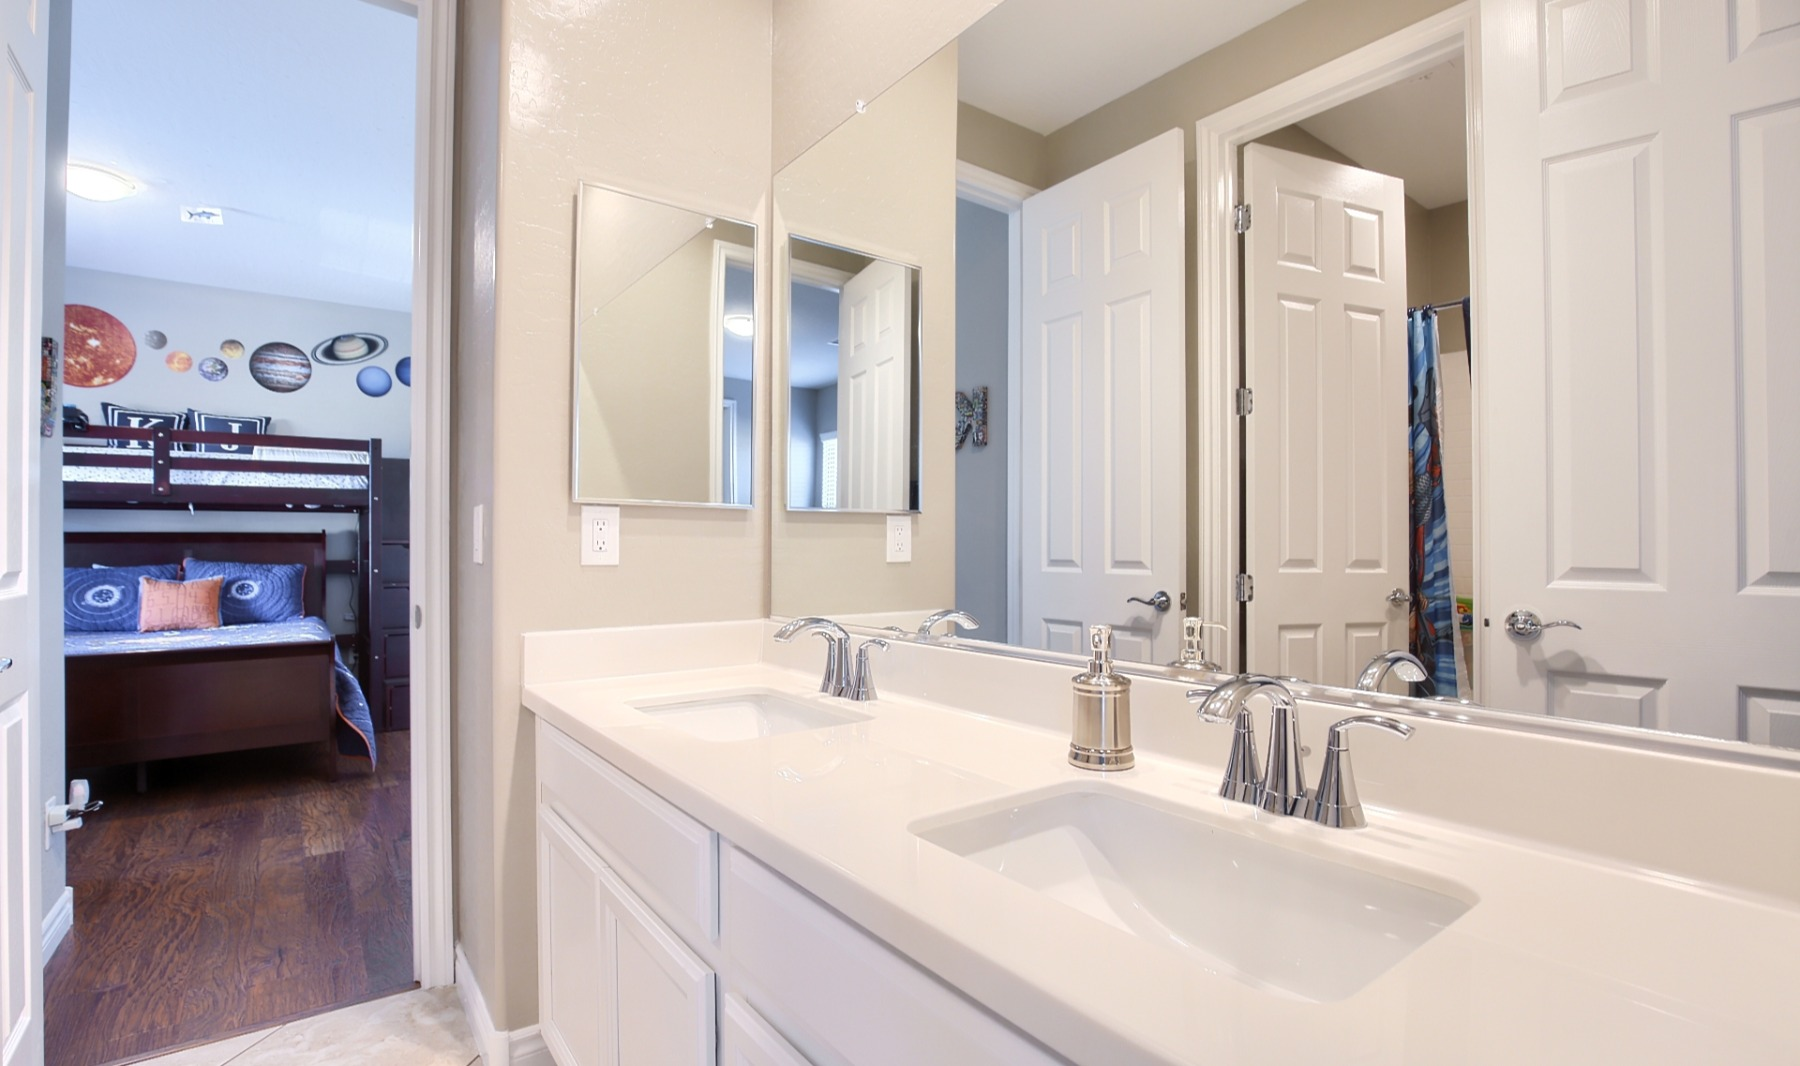 Beautiful Lennar Home | Image Title